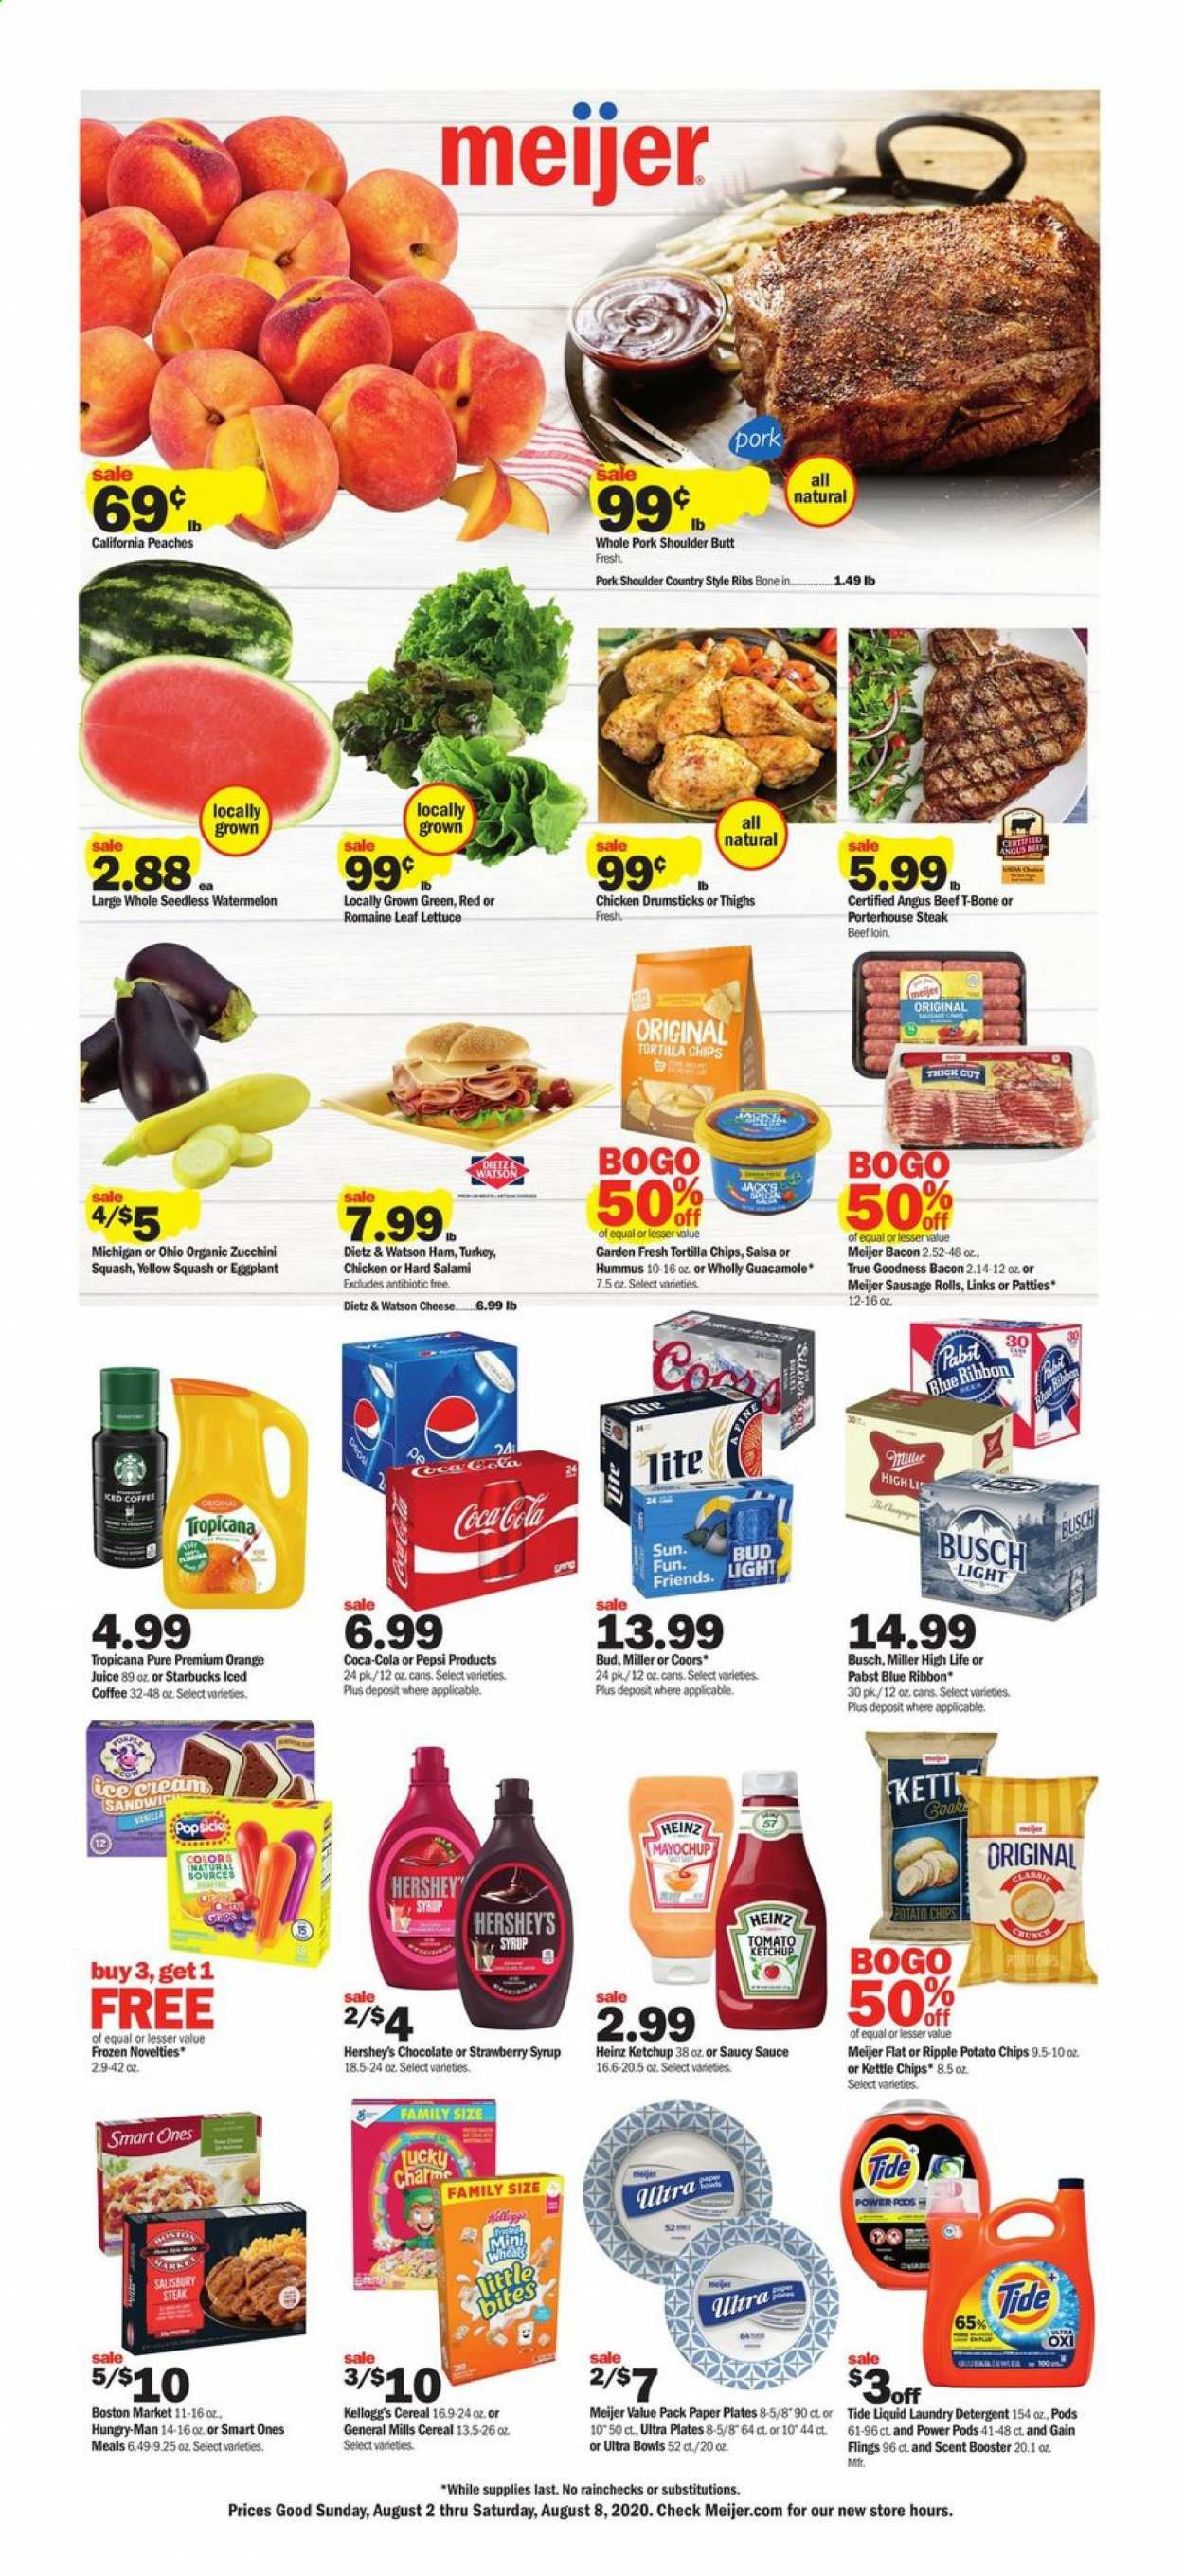 Meijer Flyer - 08.02.2020 - 08.08.2020 - Sales products - sausage rolls, rolls, Blue Ribbon, sandwich, sauce, bacon, salami, ham, Dietz & Watson, sausage, hummus, guacamole, cheese, salsa, Hershey's, zucchini squash, lettuce, eggplant, chocolate, Kellogg's, tortilla chips, potato chips, Heinz, cereals, ketchup, syrup, Coca-Cola, Pepsi, orange juice, juice, iced coffee, Starbucks, beer, Coors, Busch, Bud Light, Miller, turkey, chicken, chicken drumsticks, chicken meat, beef meat, t-bone steak, steak, pork meat, pork shoulder, country style ribs, detergent, Gain, Tide, laundry detergent, plate, paper. Page 1.